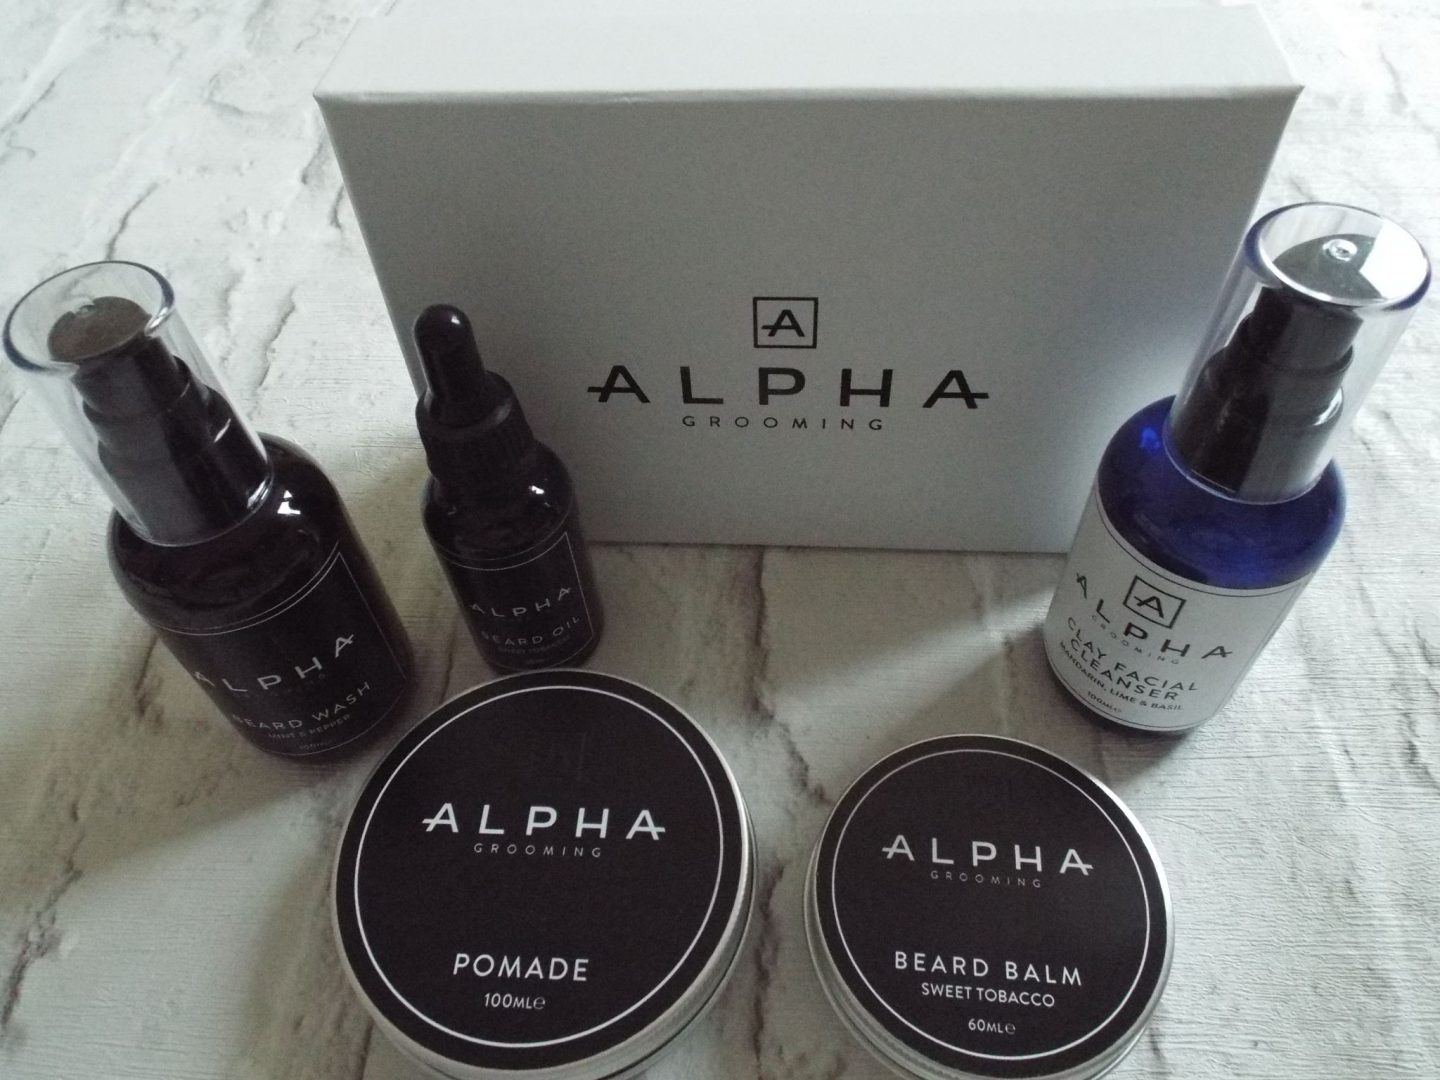 Alpha Grooming products